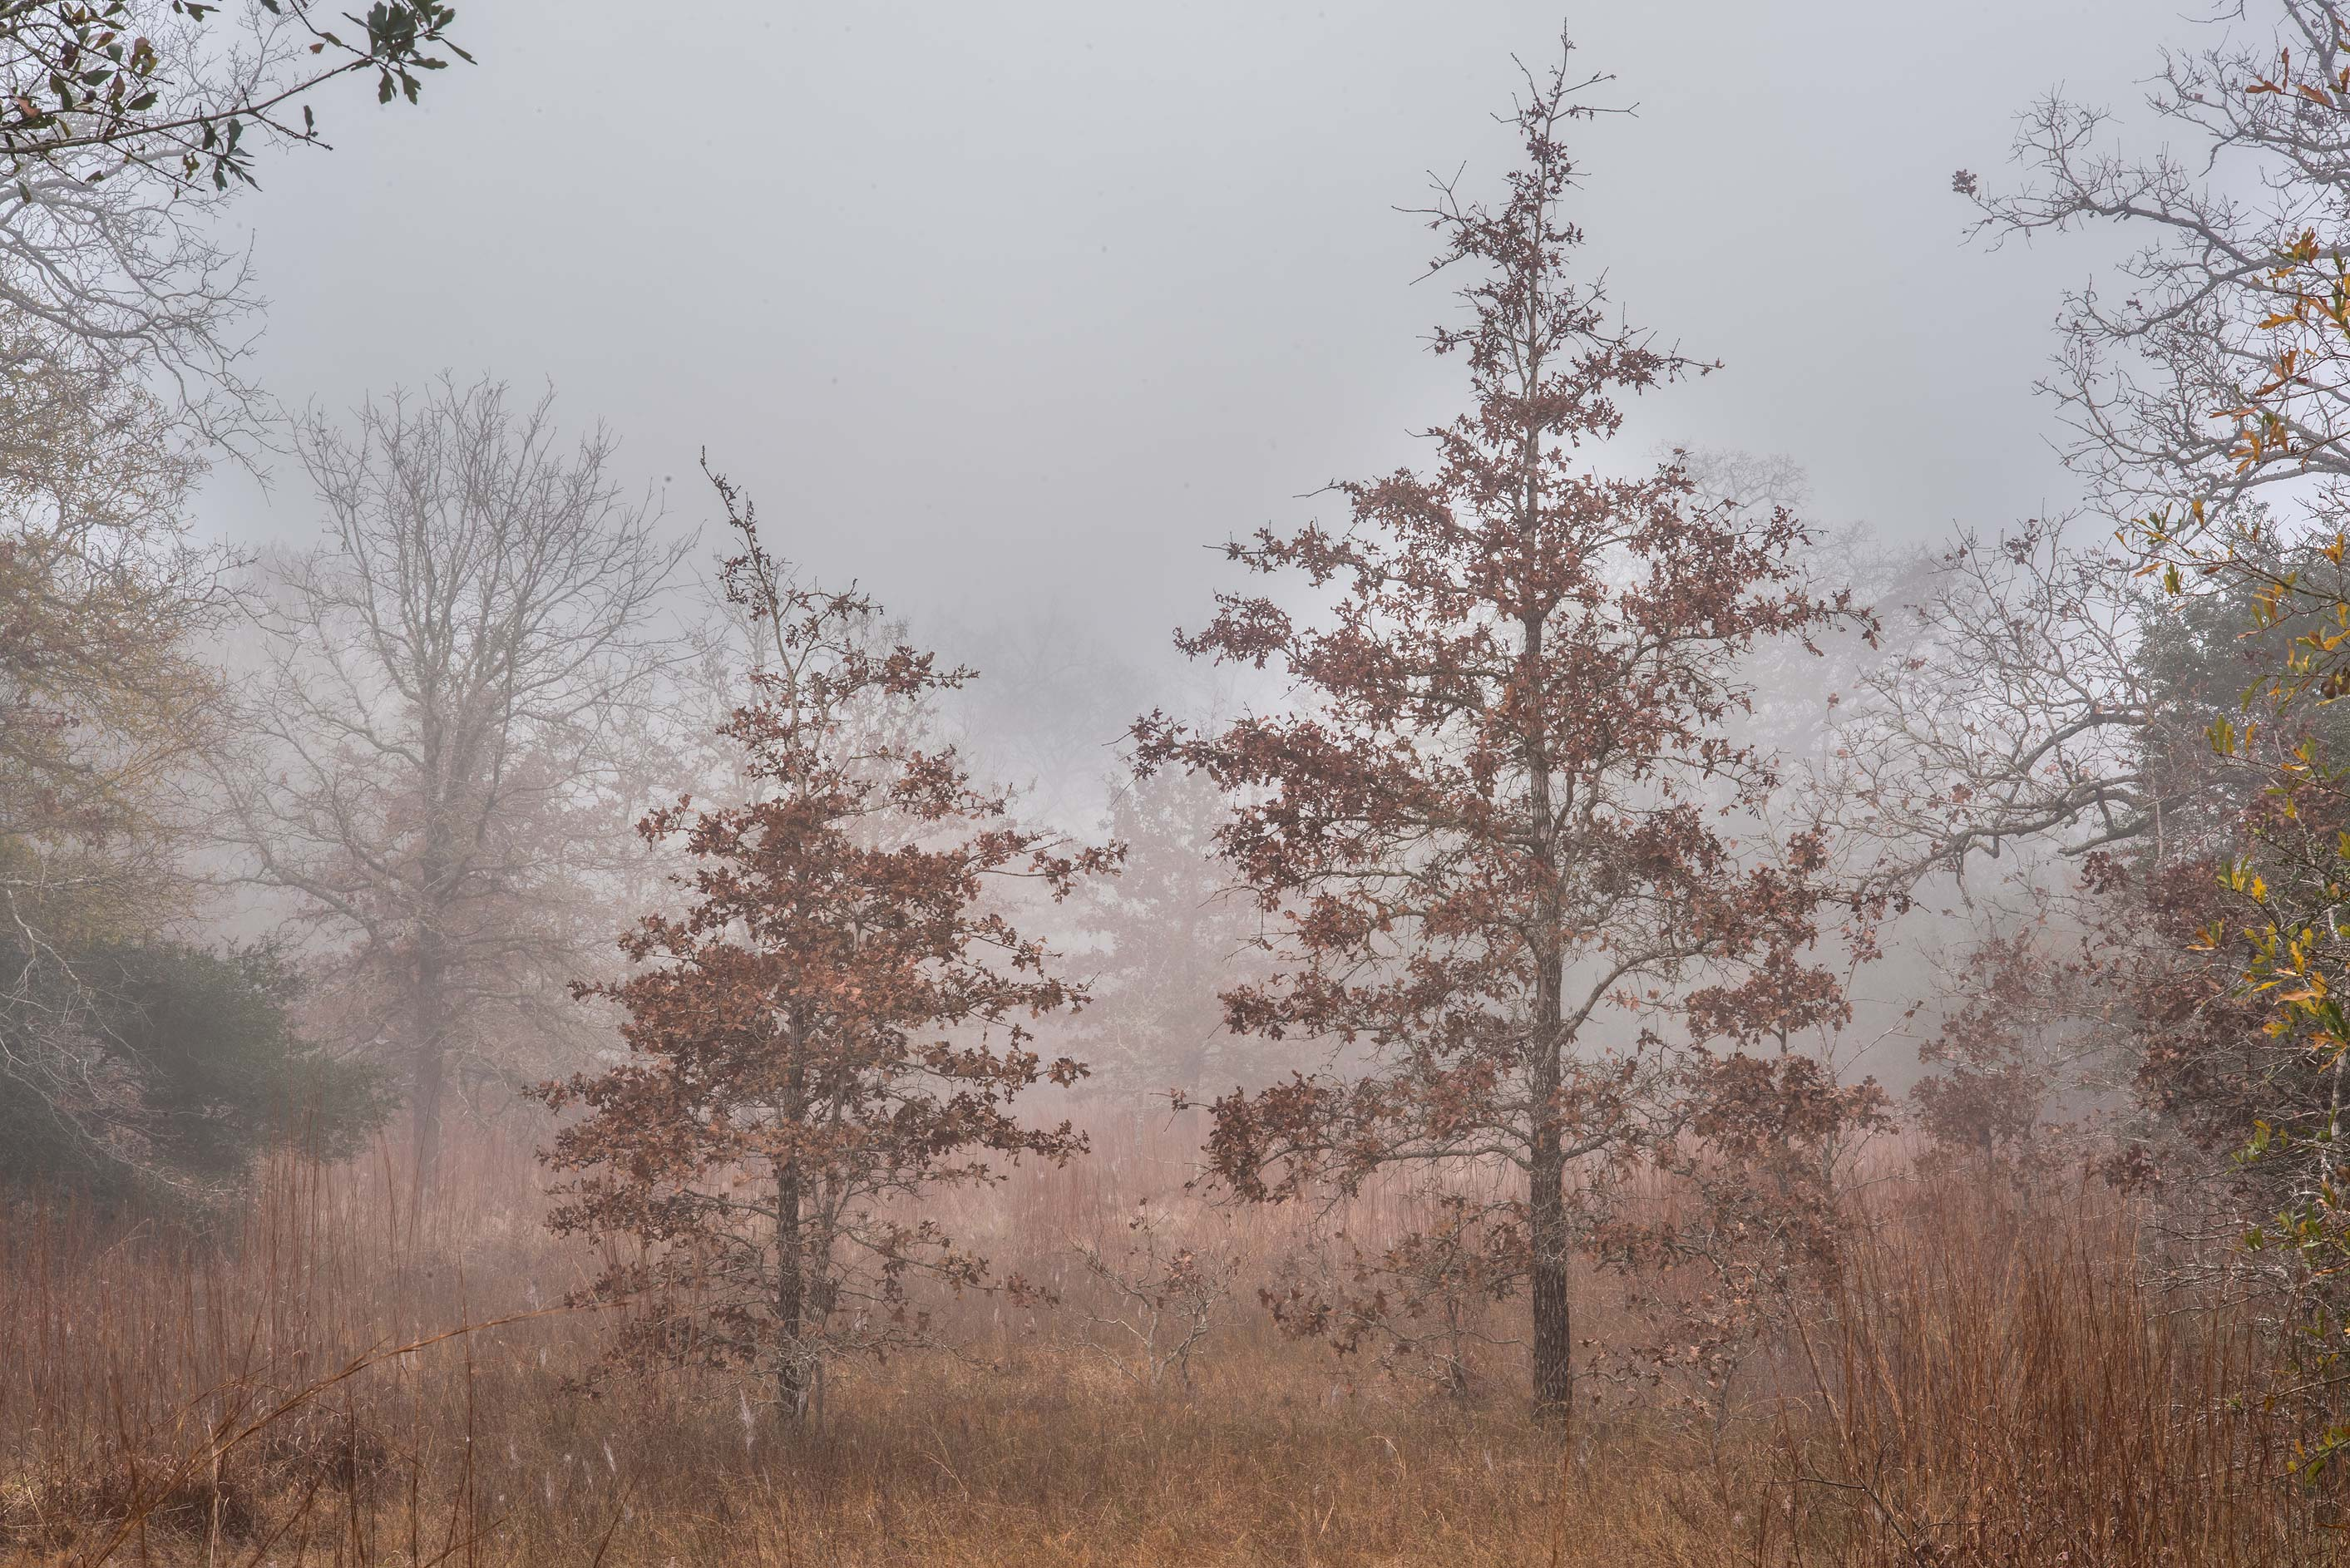 Small oaks in fog in Lick Creek Park. College Station, Texas